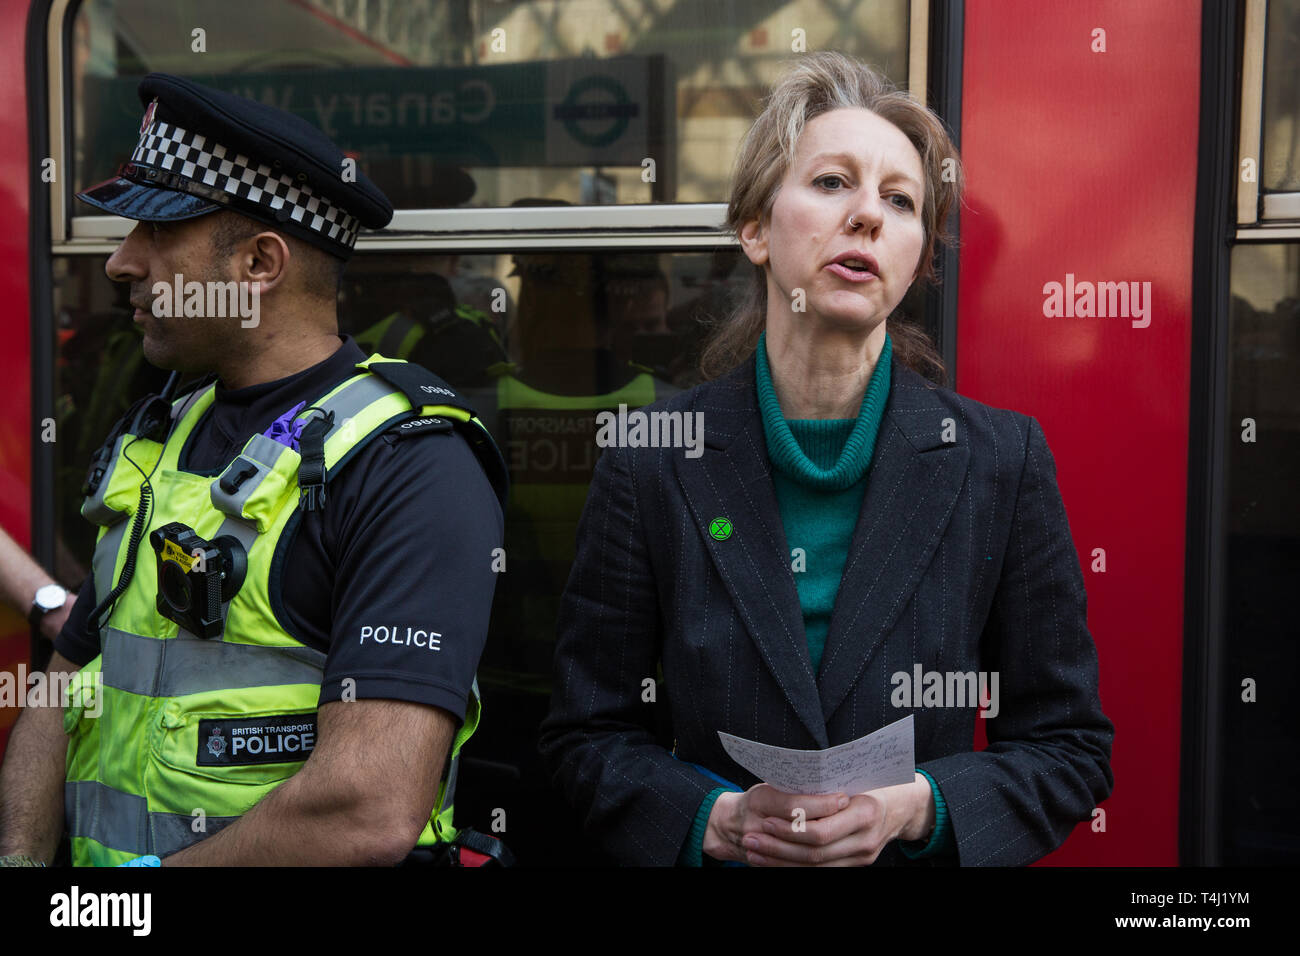 London, UK. 17th April 2019. Dr Gail Bradbrook of Extinction Rebellion addresses journalists after climate change activists from Extinction Rebellion glued themselves to a DLR train at Canary Wharf station on the third day of International Rebellion activities to call on the British government to take urgent action to combat climate change. Credit: Mark Kerrison/Alamy Live News Stock Photo